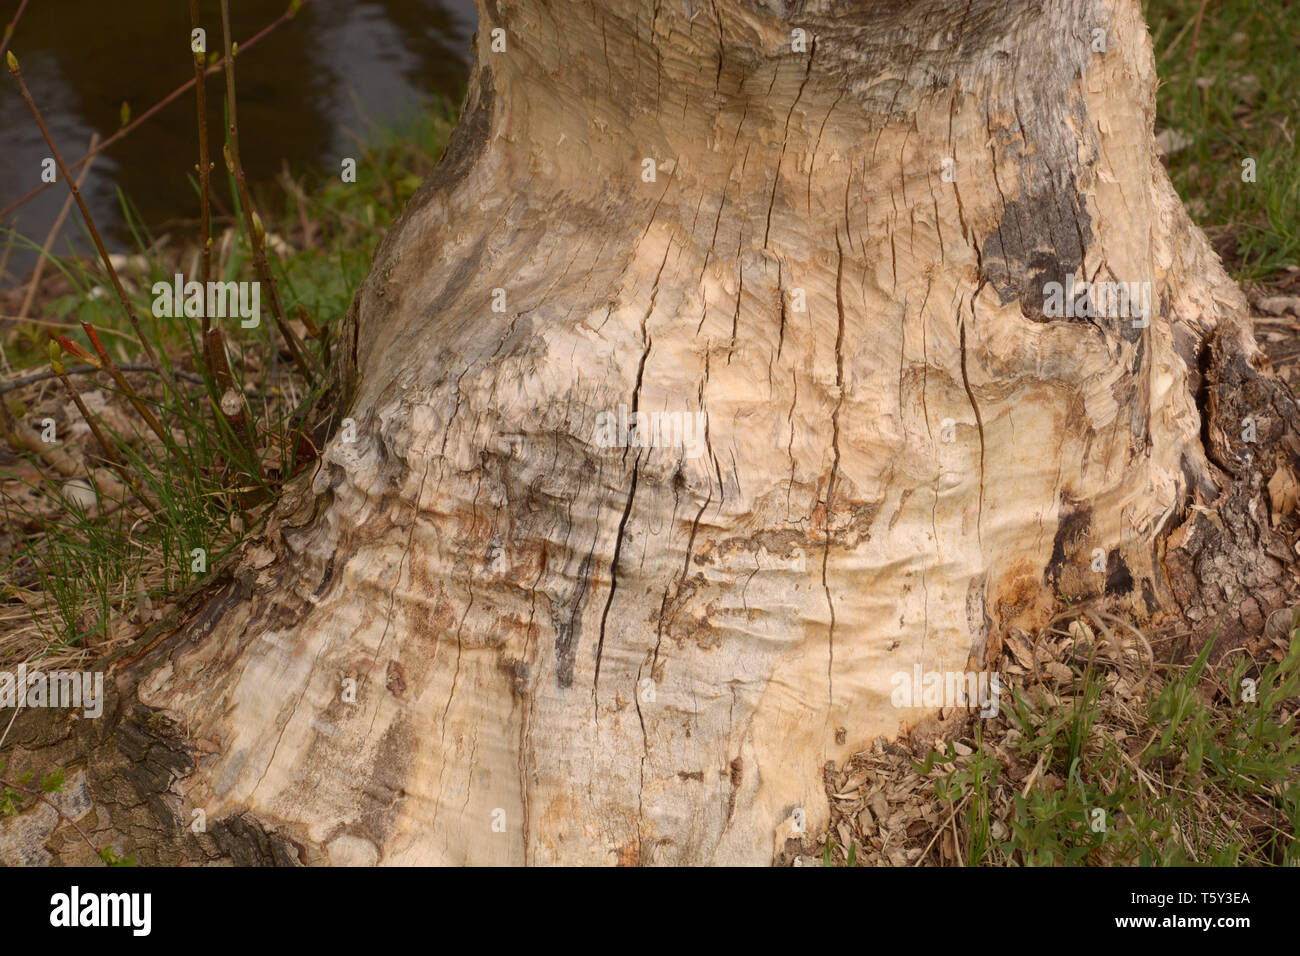 tree damaged by beaver, damaged and gnawed tree caused by beaver also called castoridae in bavaria - Stock Image